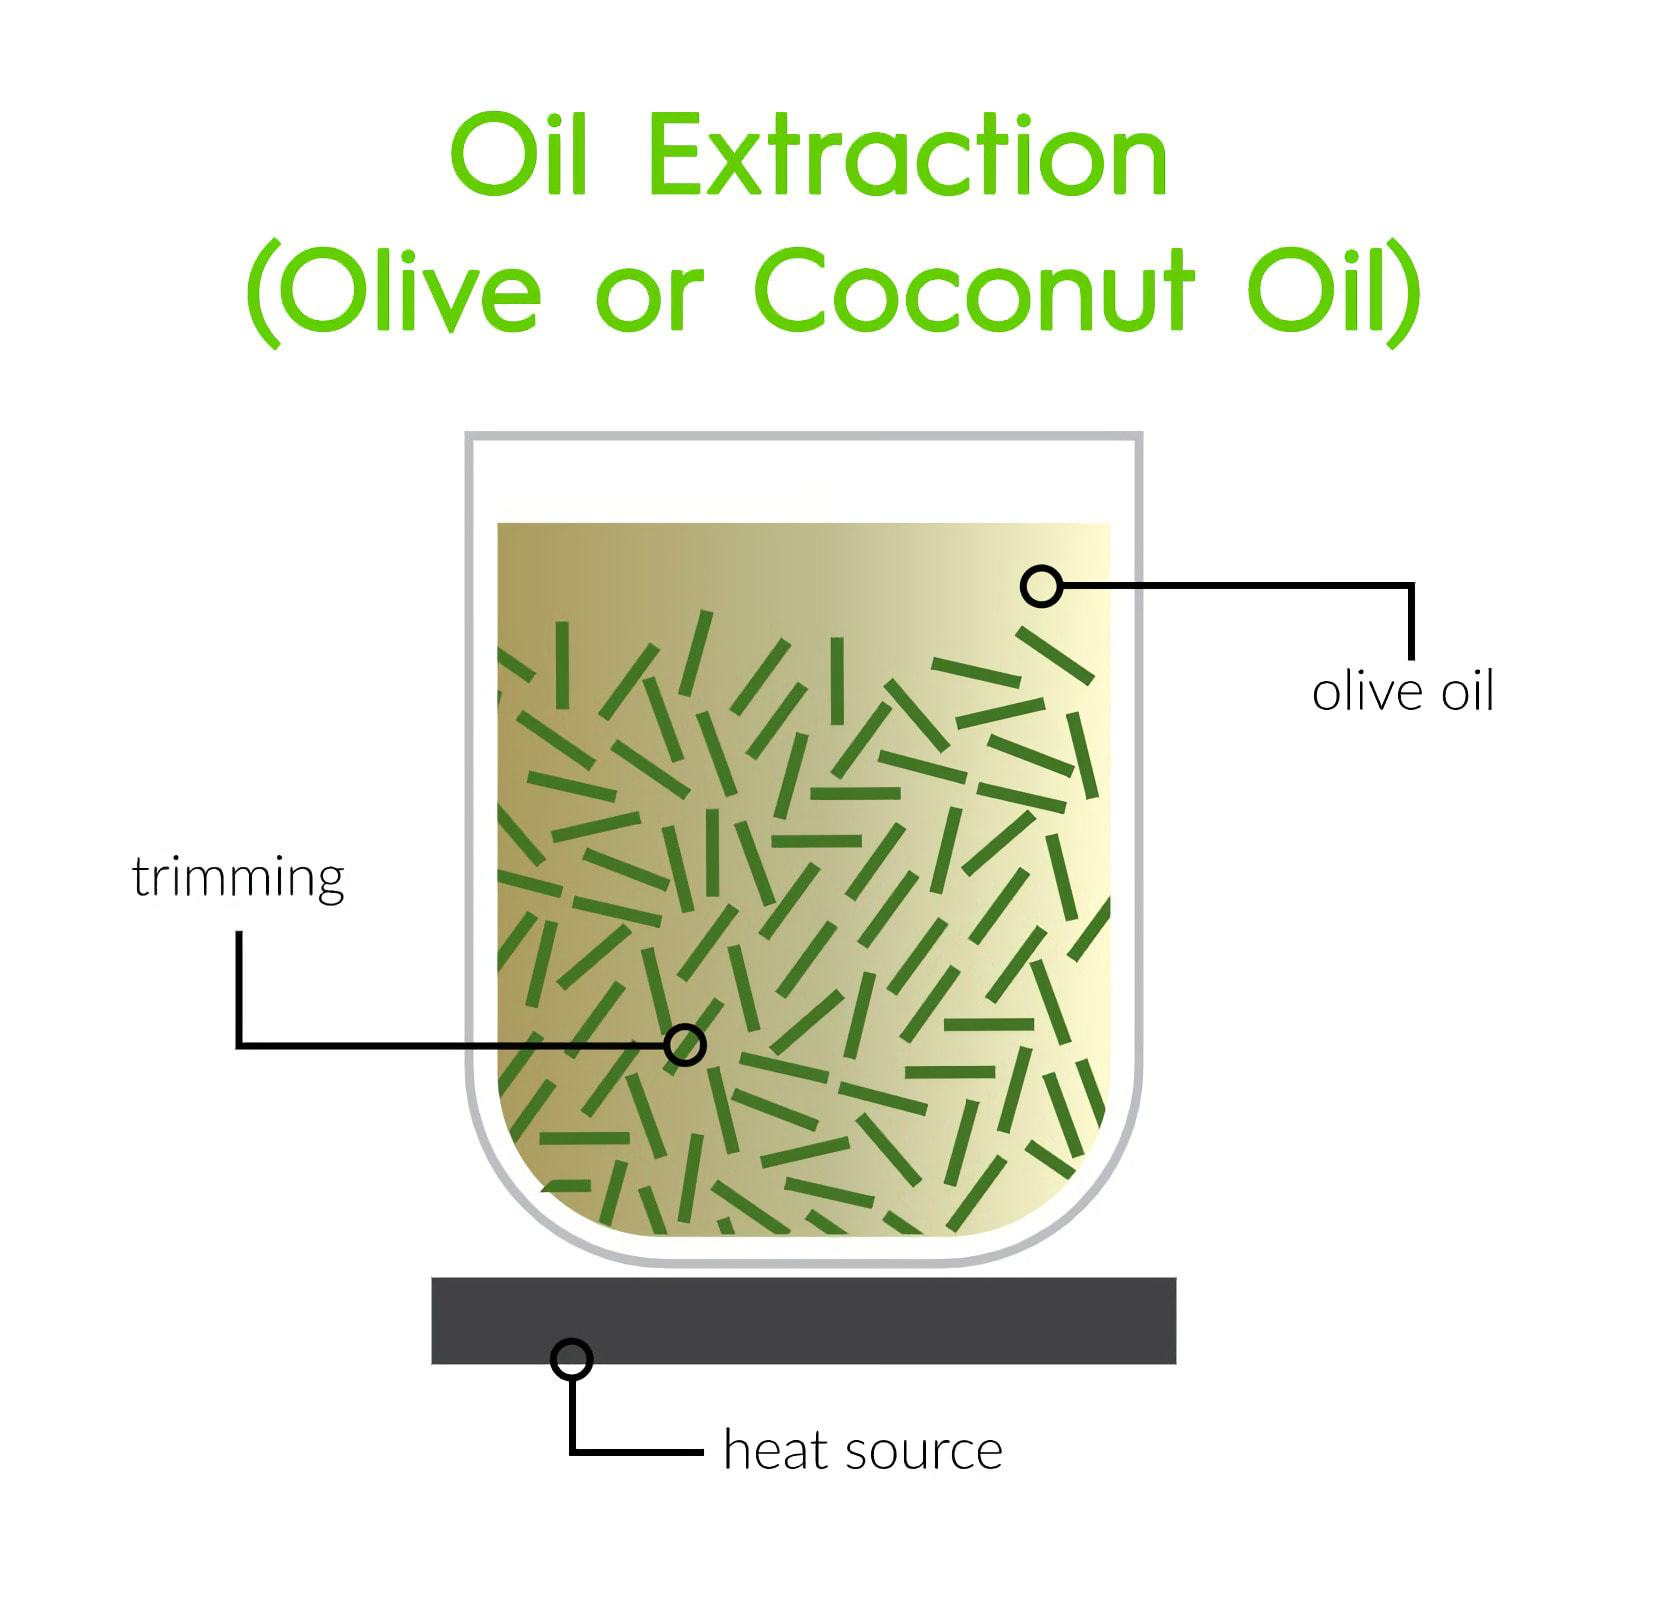 Oil extraction Using Olive or Coconut Oil